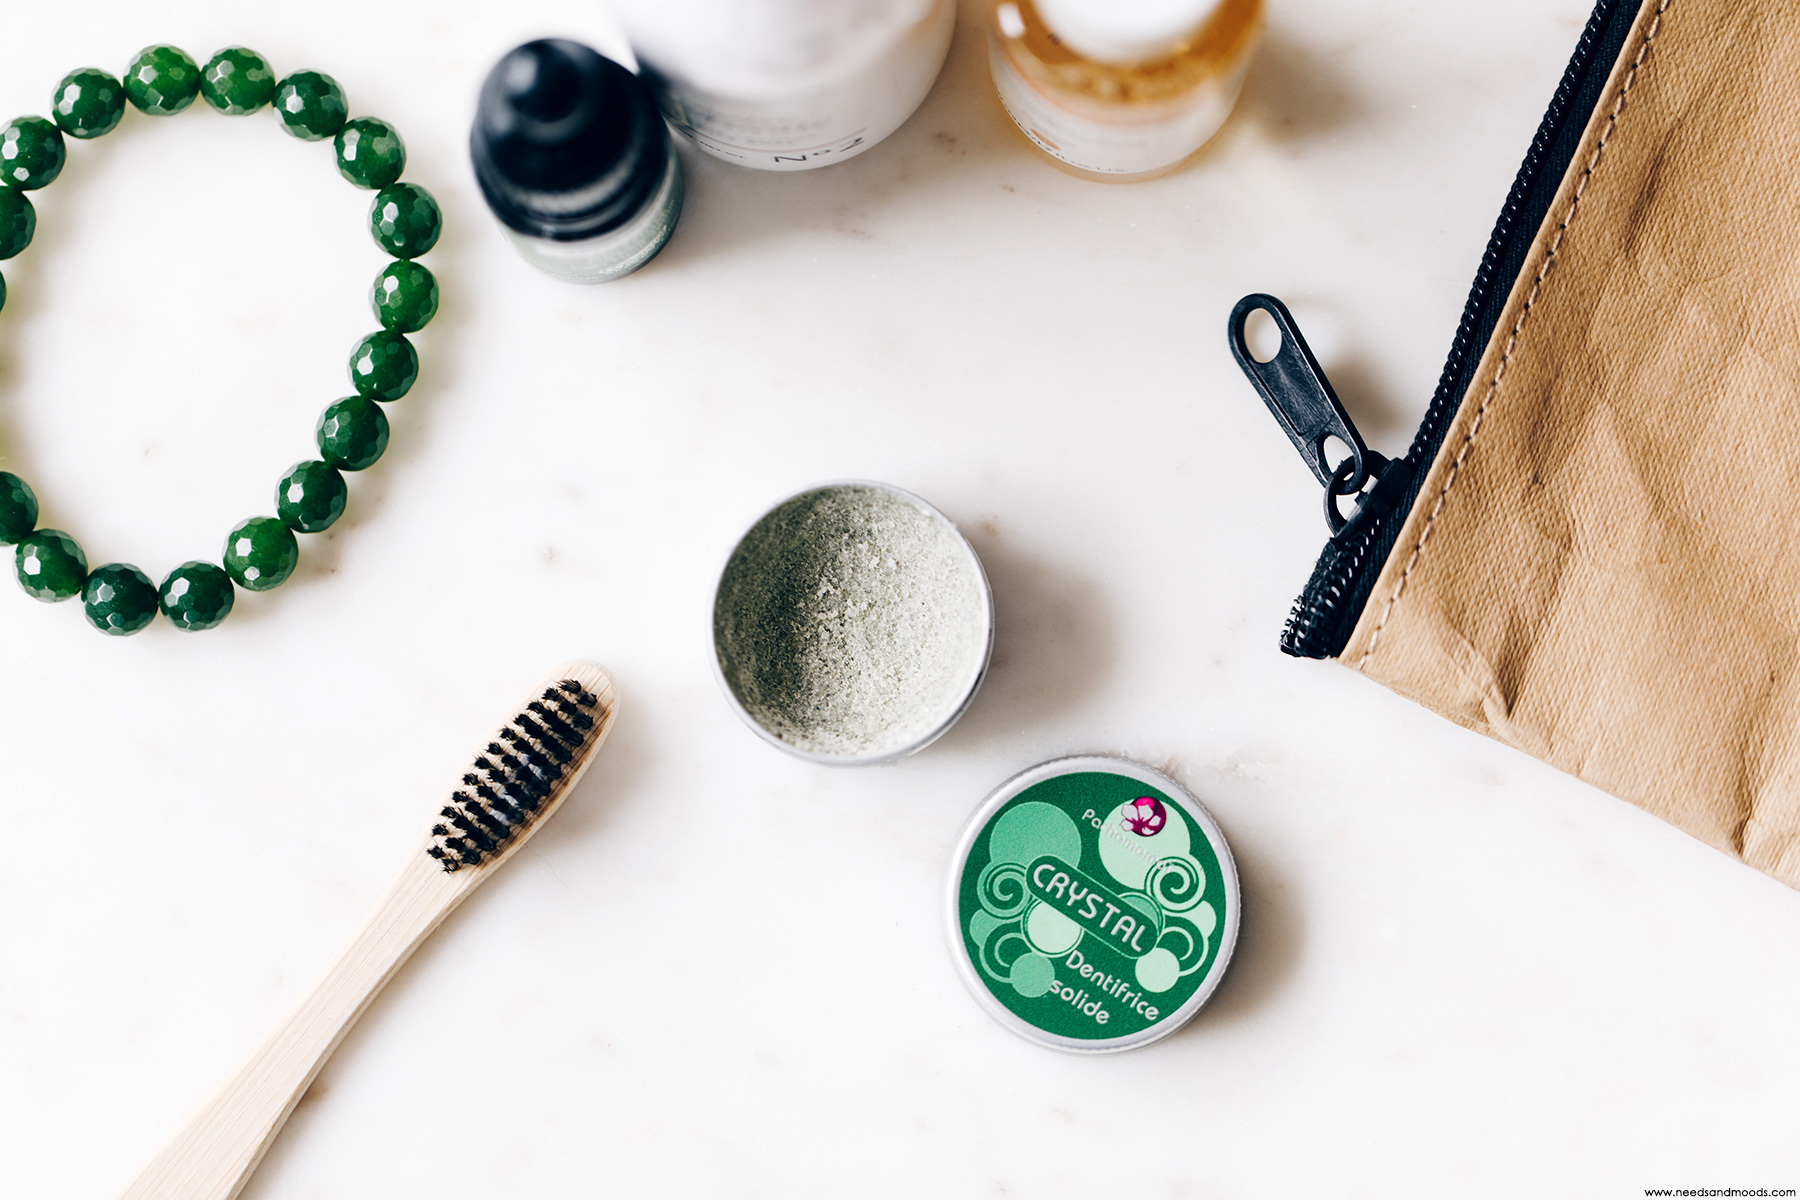 pachamamai dentifrice solide crystal menthe